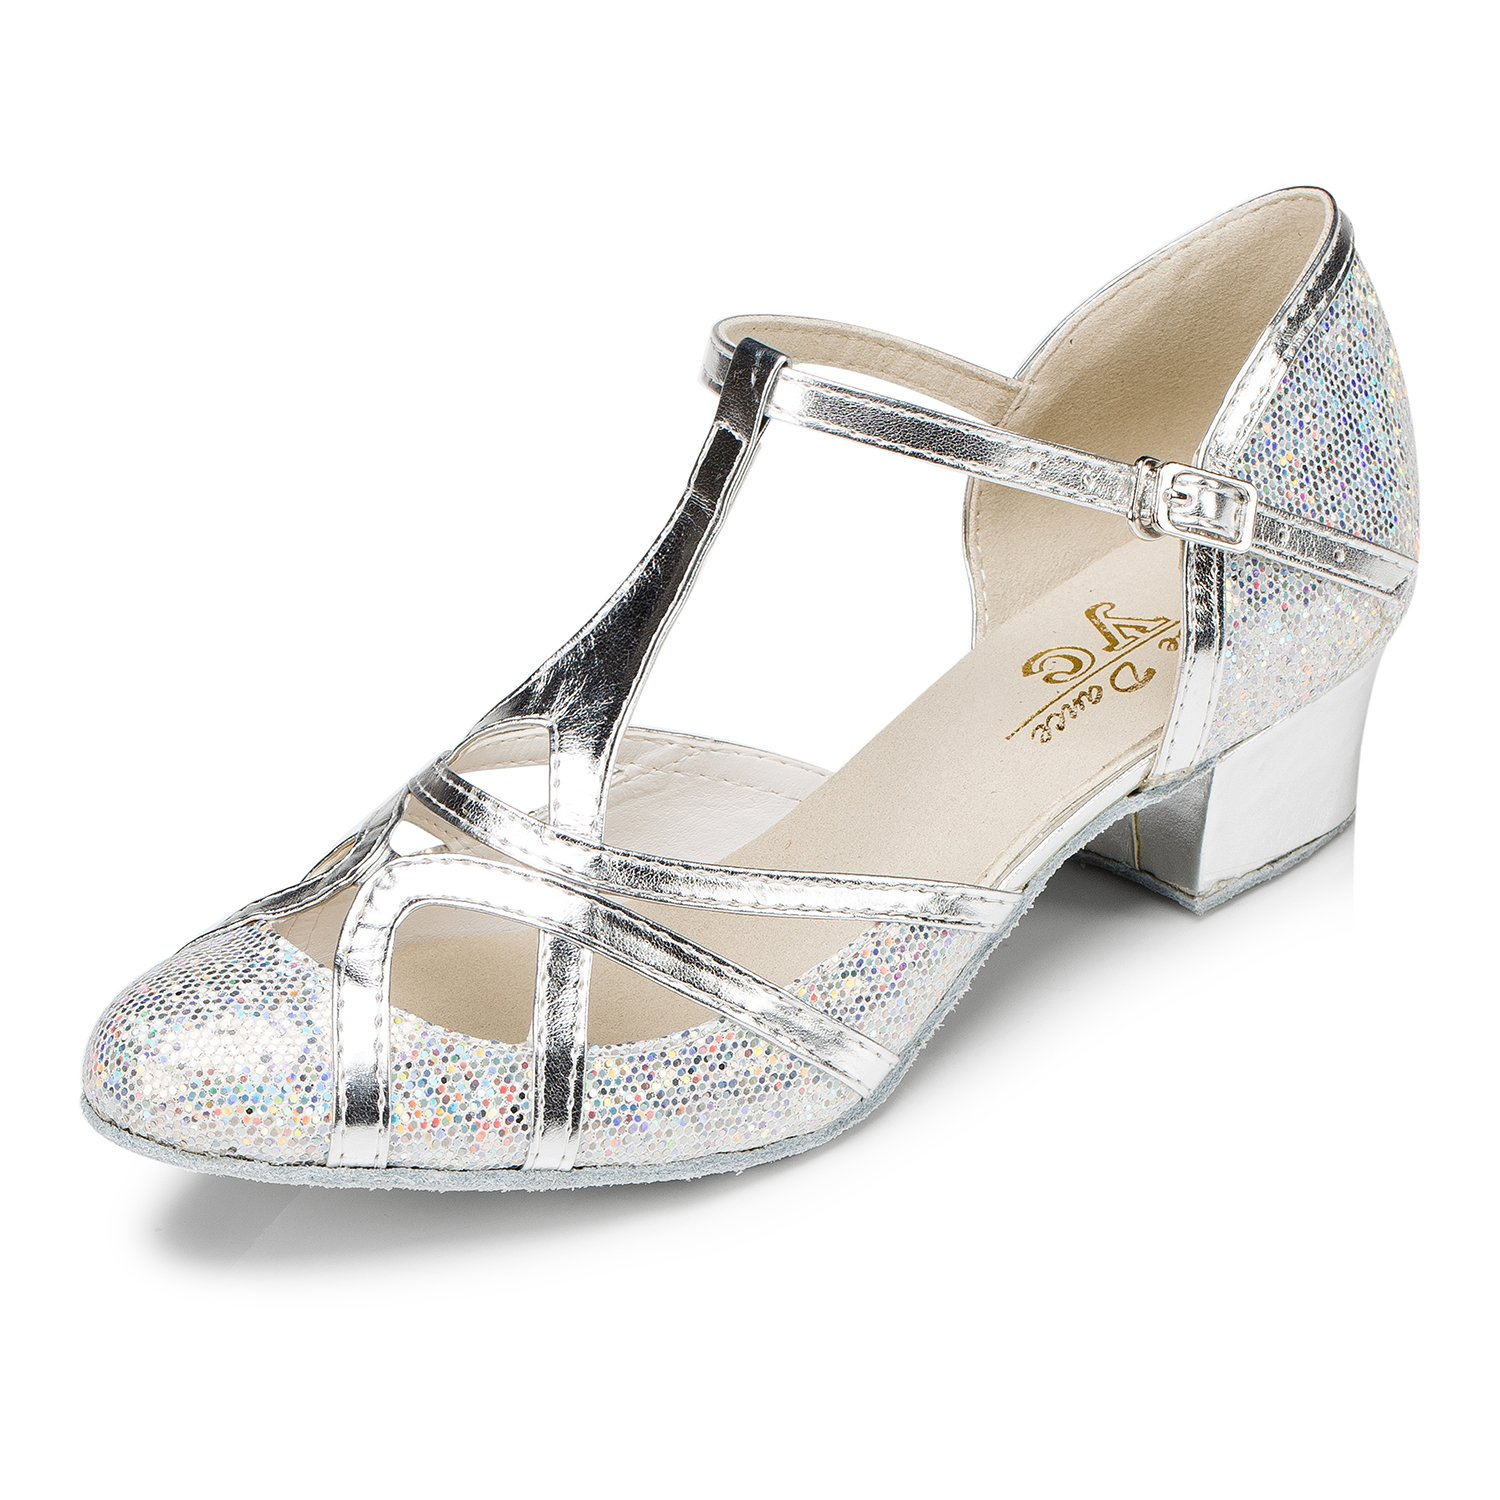 CRC Women's Round Toe T-Strap Silver PU Leather Glitter Material Ballroom Morden Tango Salsa Professional Dance Shoes 8.5 M US